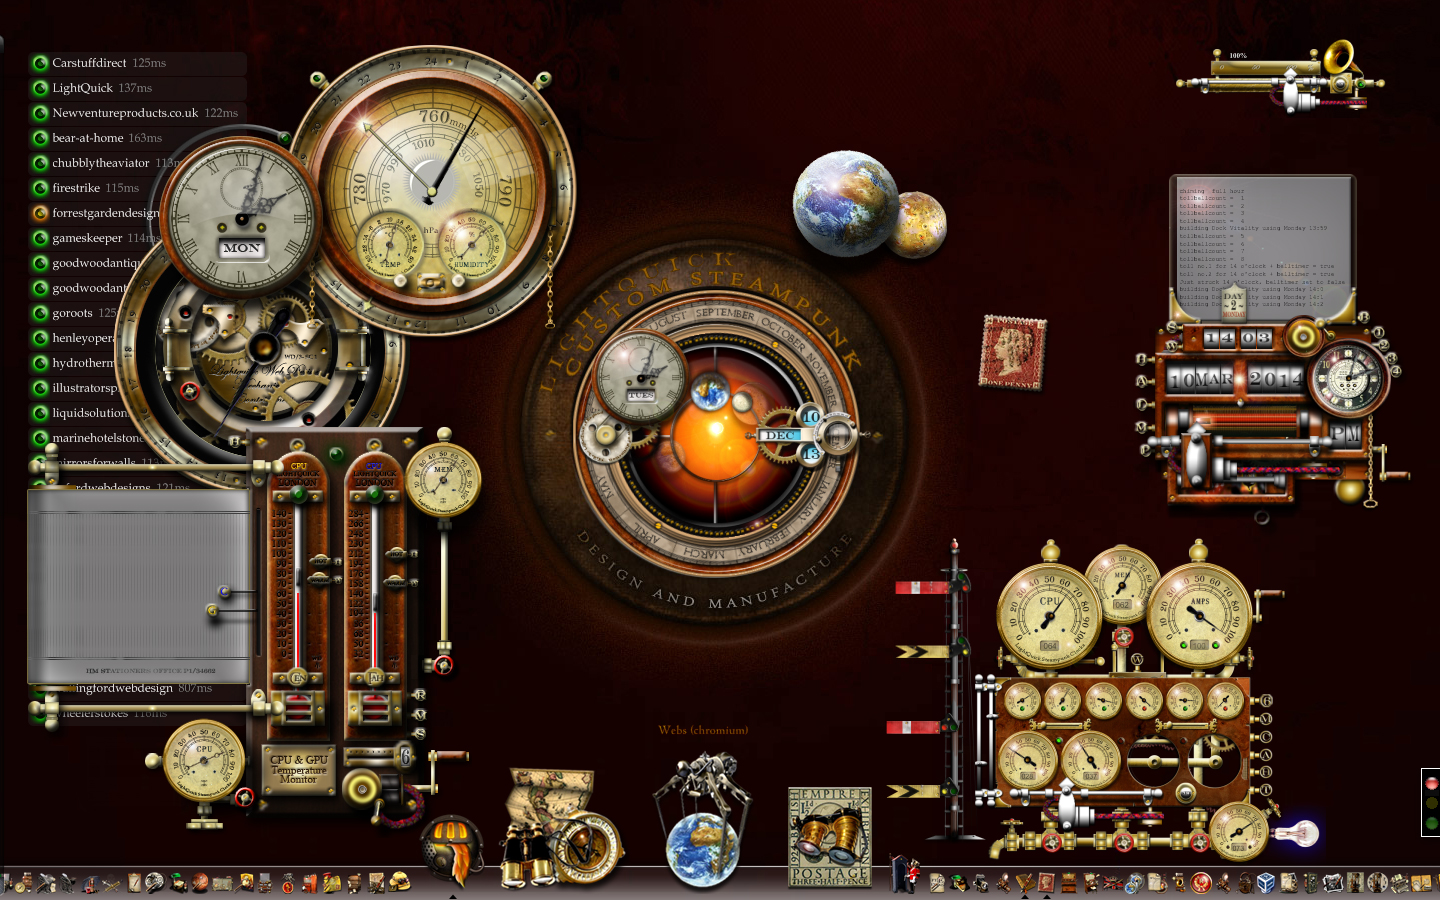 My Current Steampunk Desktop March 2014 by yereverluvinuncleber